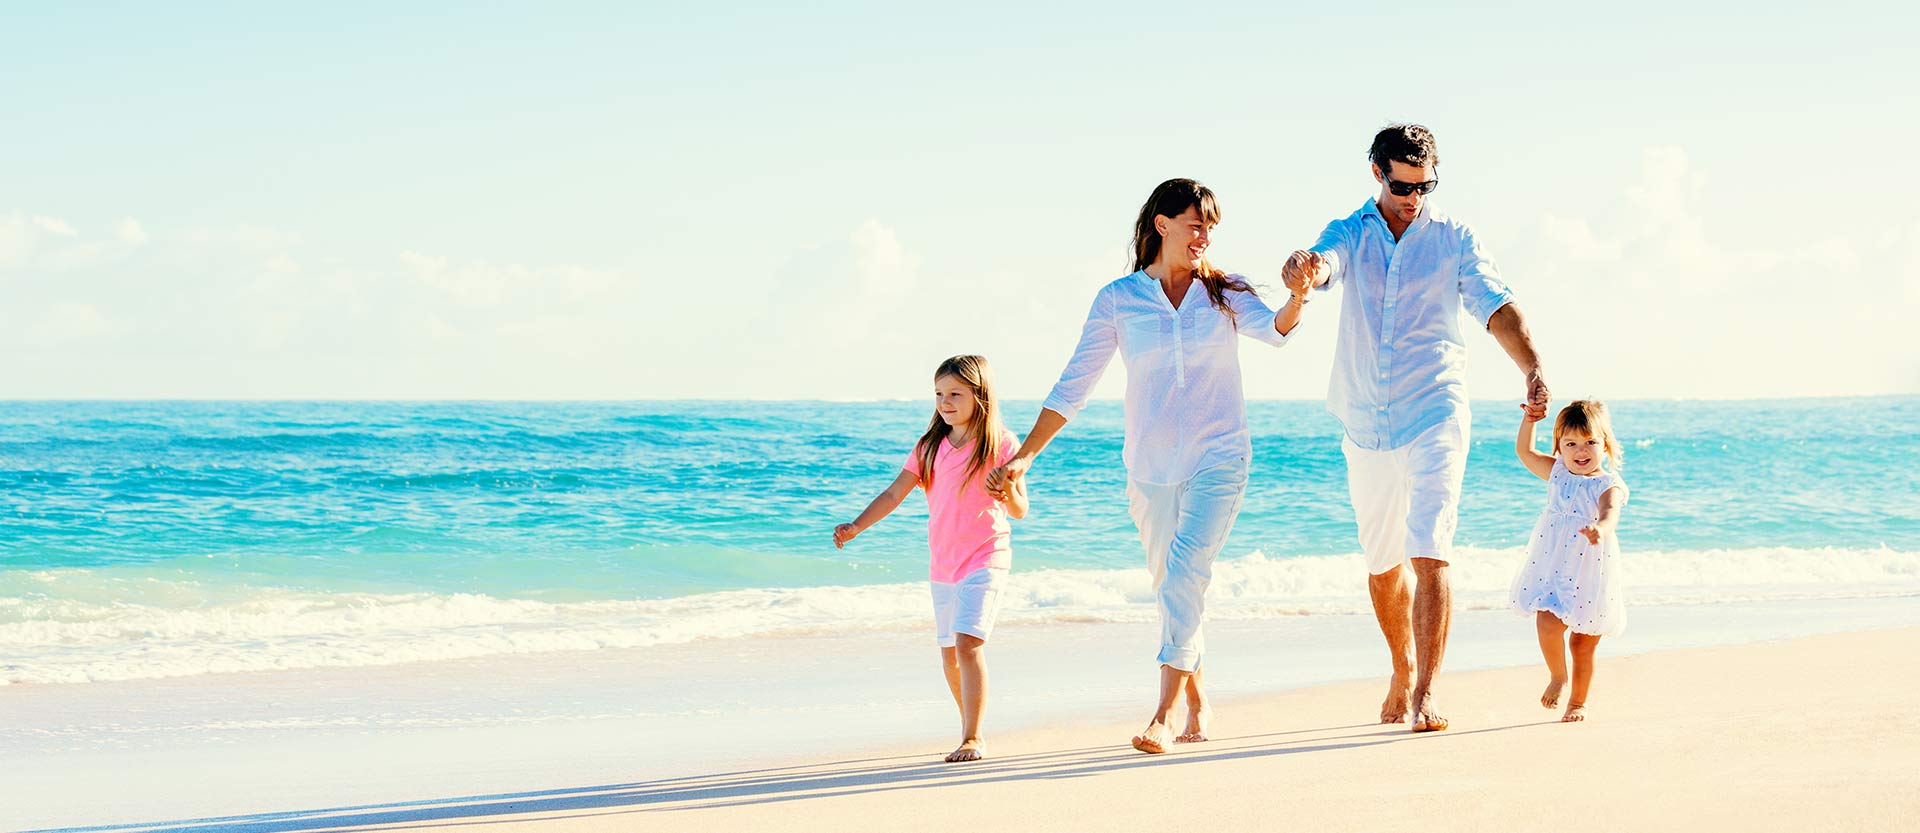 The Eye Center - Eye care for the whole family.